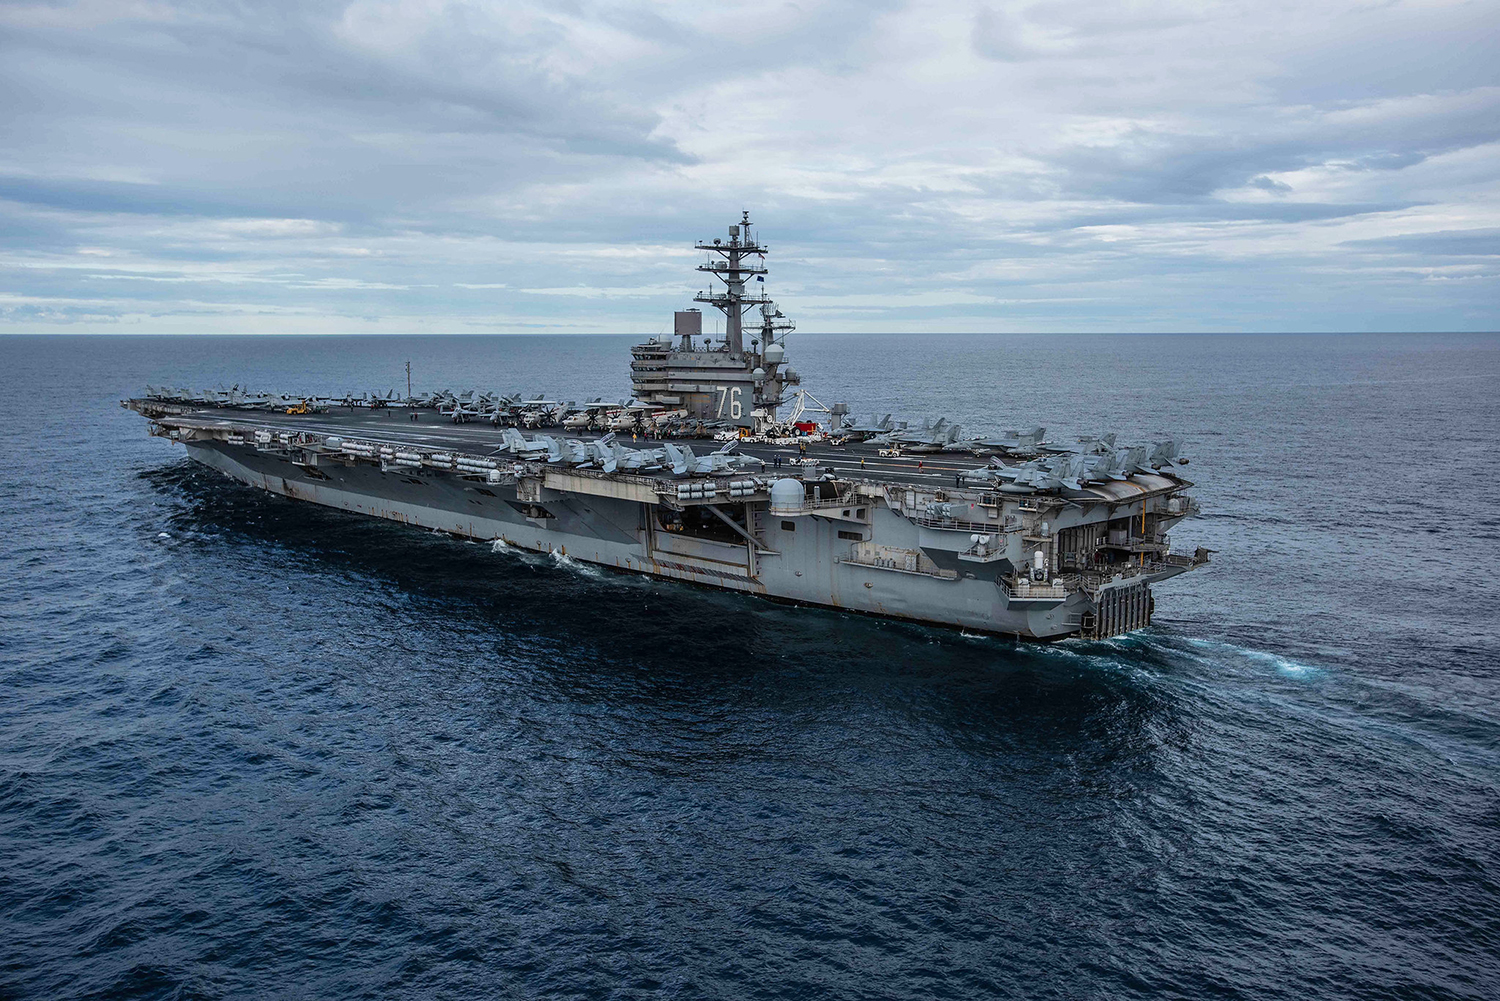 The Navy's forward-deployed aircraft carrier USS Ronald Reagan (CVN 76) cruises during Talisman Sabre 2019 on July 22, 2019, in the Coral Sea. (Mass Communication Specialist 2nd Class Kaila V. Peters/Navy)